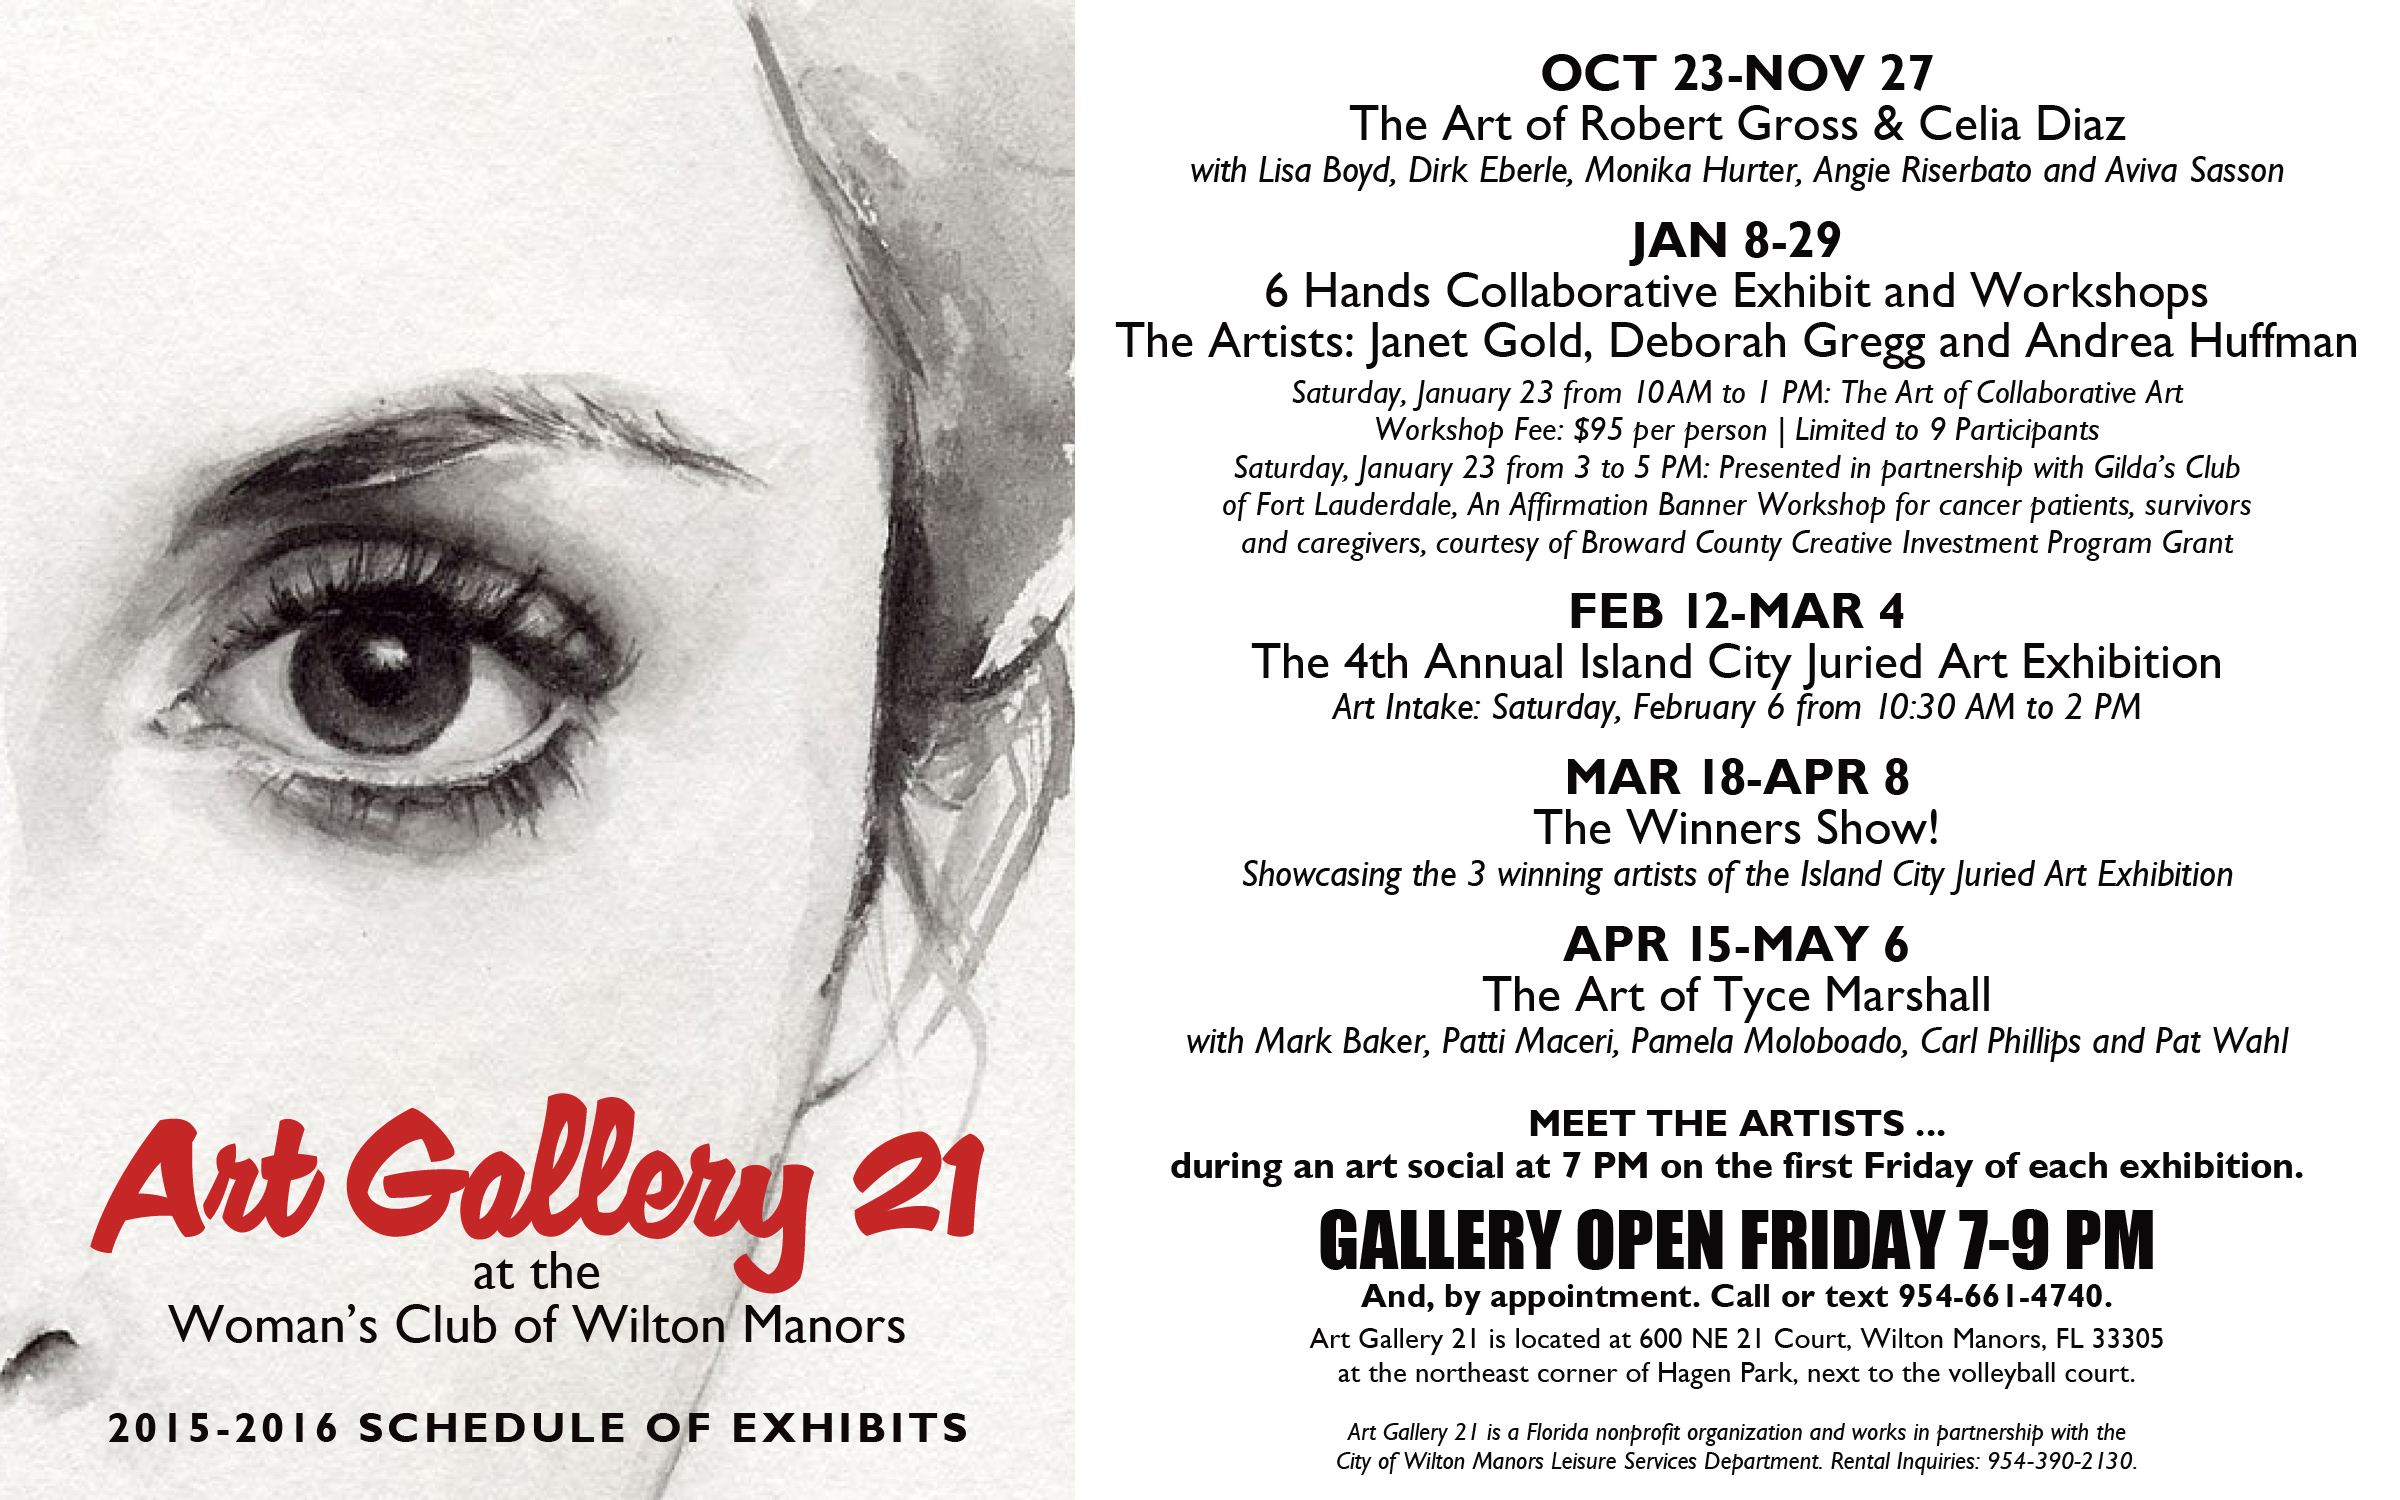 2015-2016 Art Gallery 21 Schedule